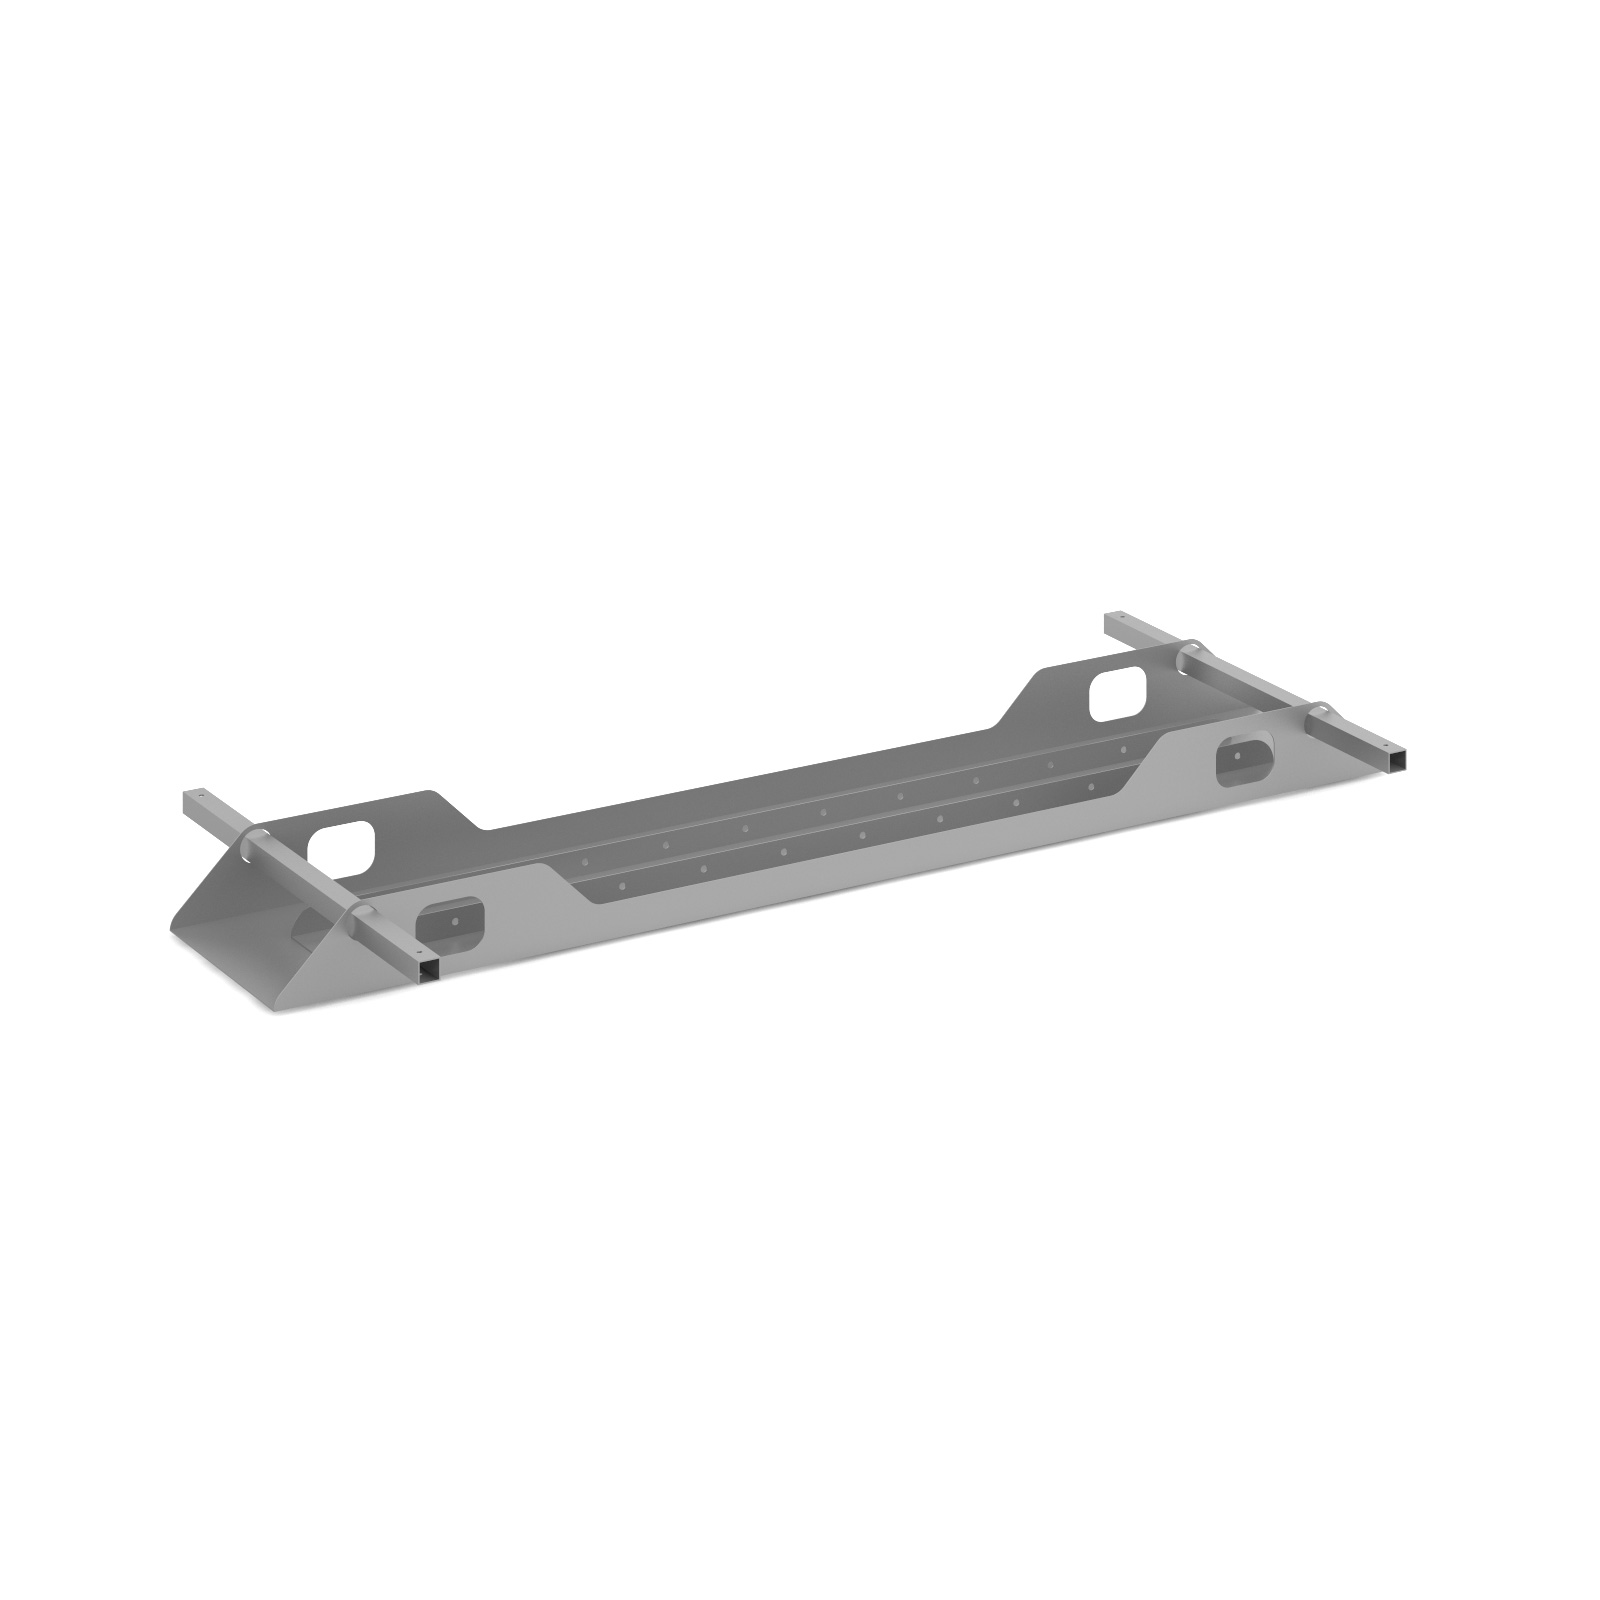 Connex Double Cable Tray 1600mm in silver